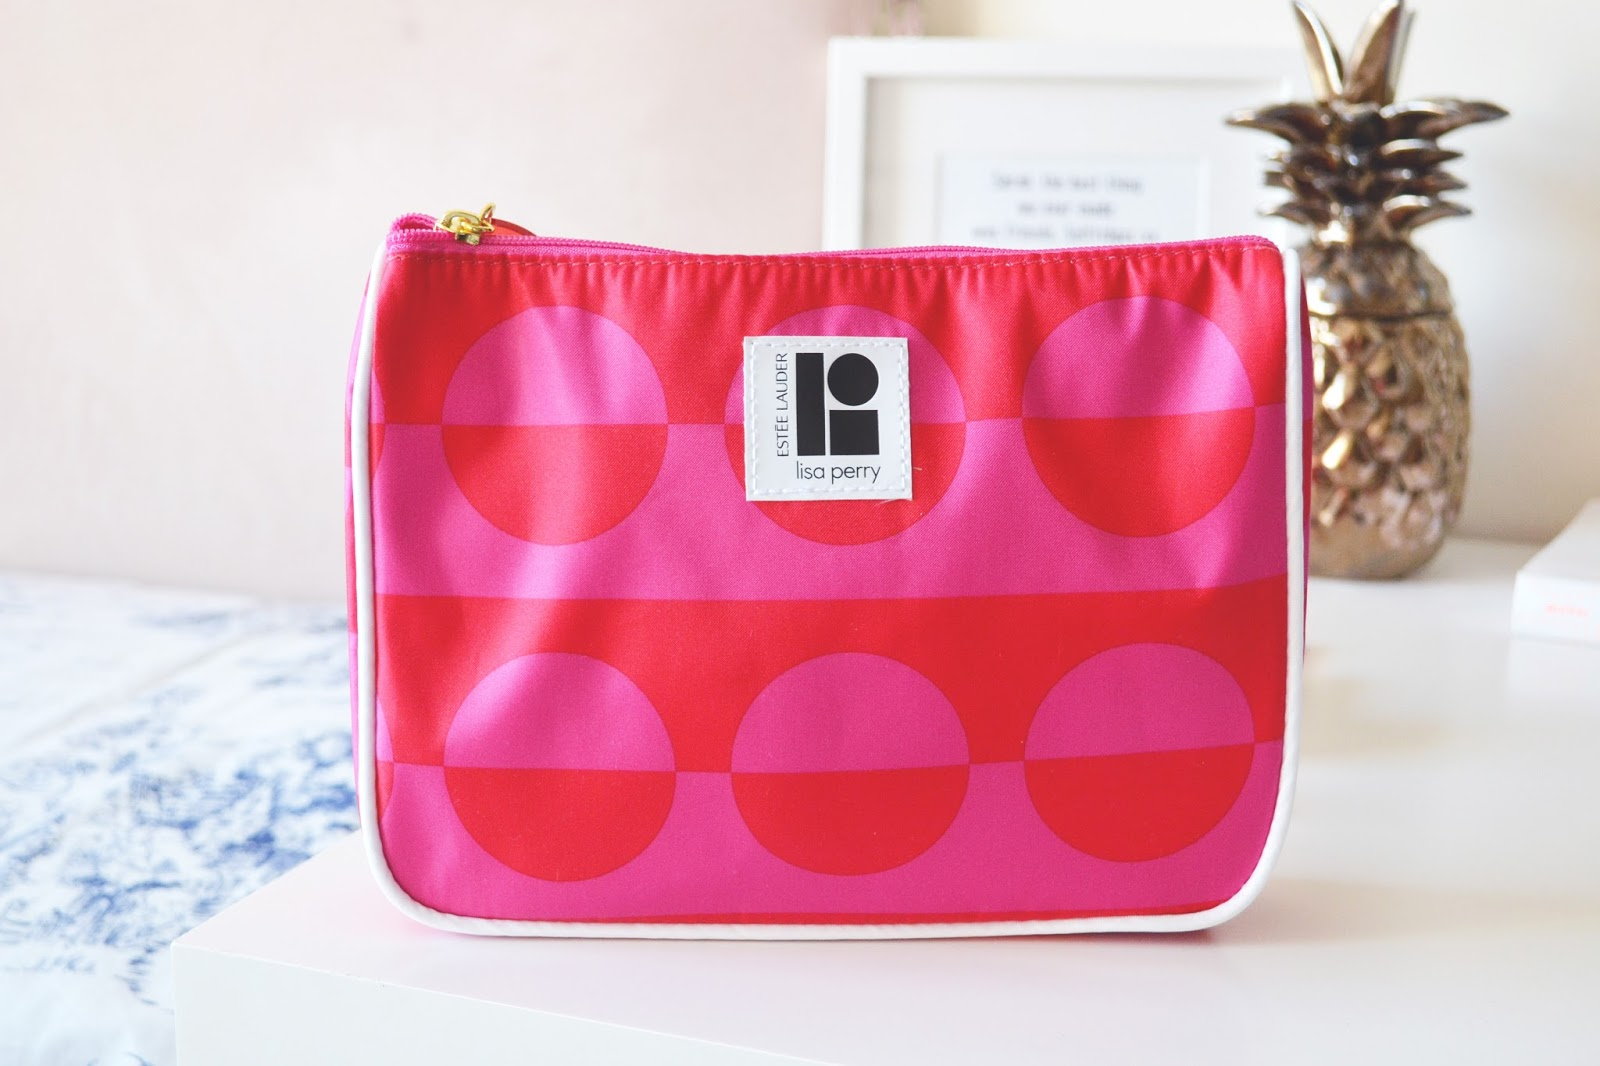 estee lauder lisa perry, pink make up bag